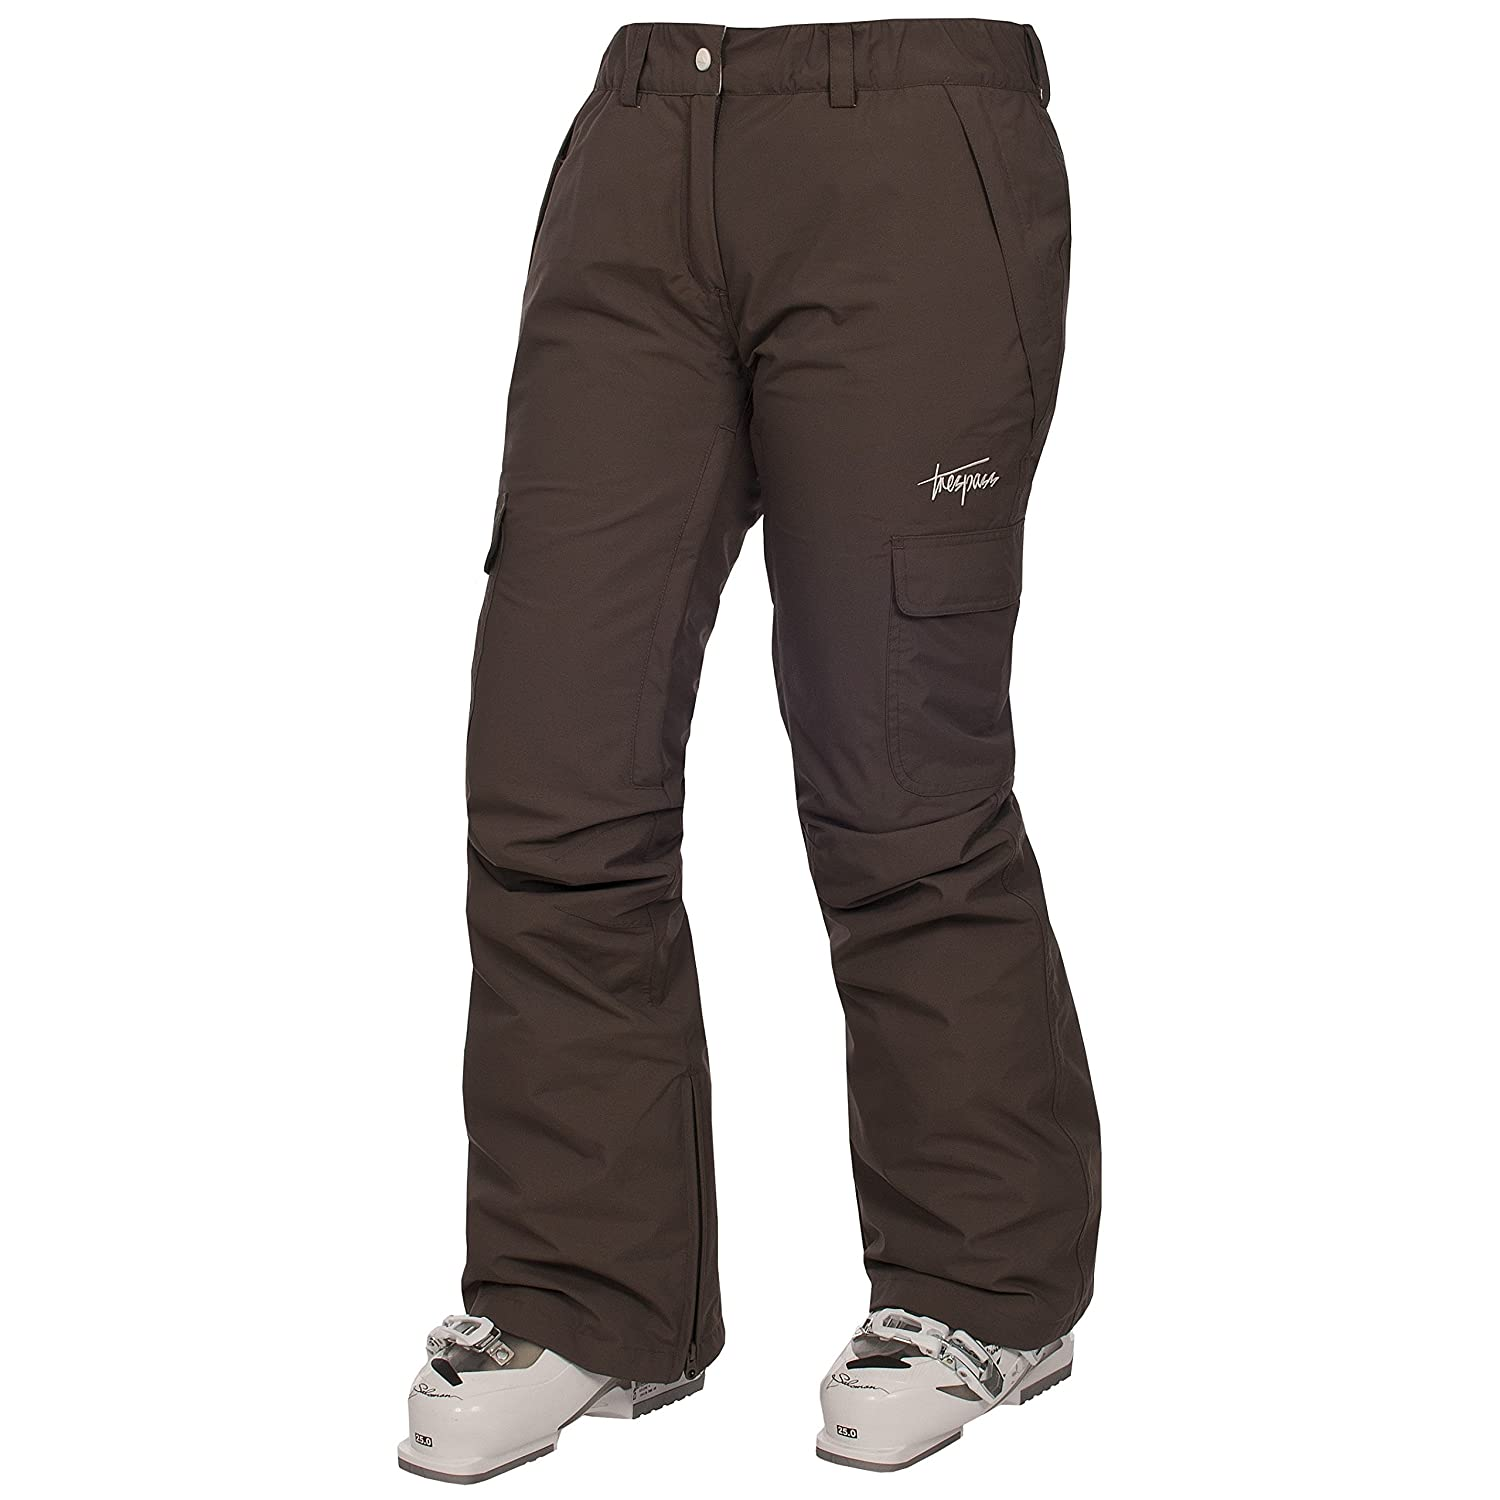 Trespass Womens/Ladies Fargo Waterproof Ski Trousers